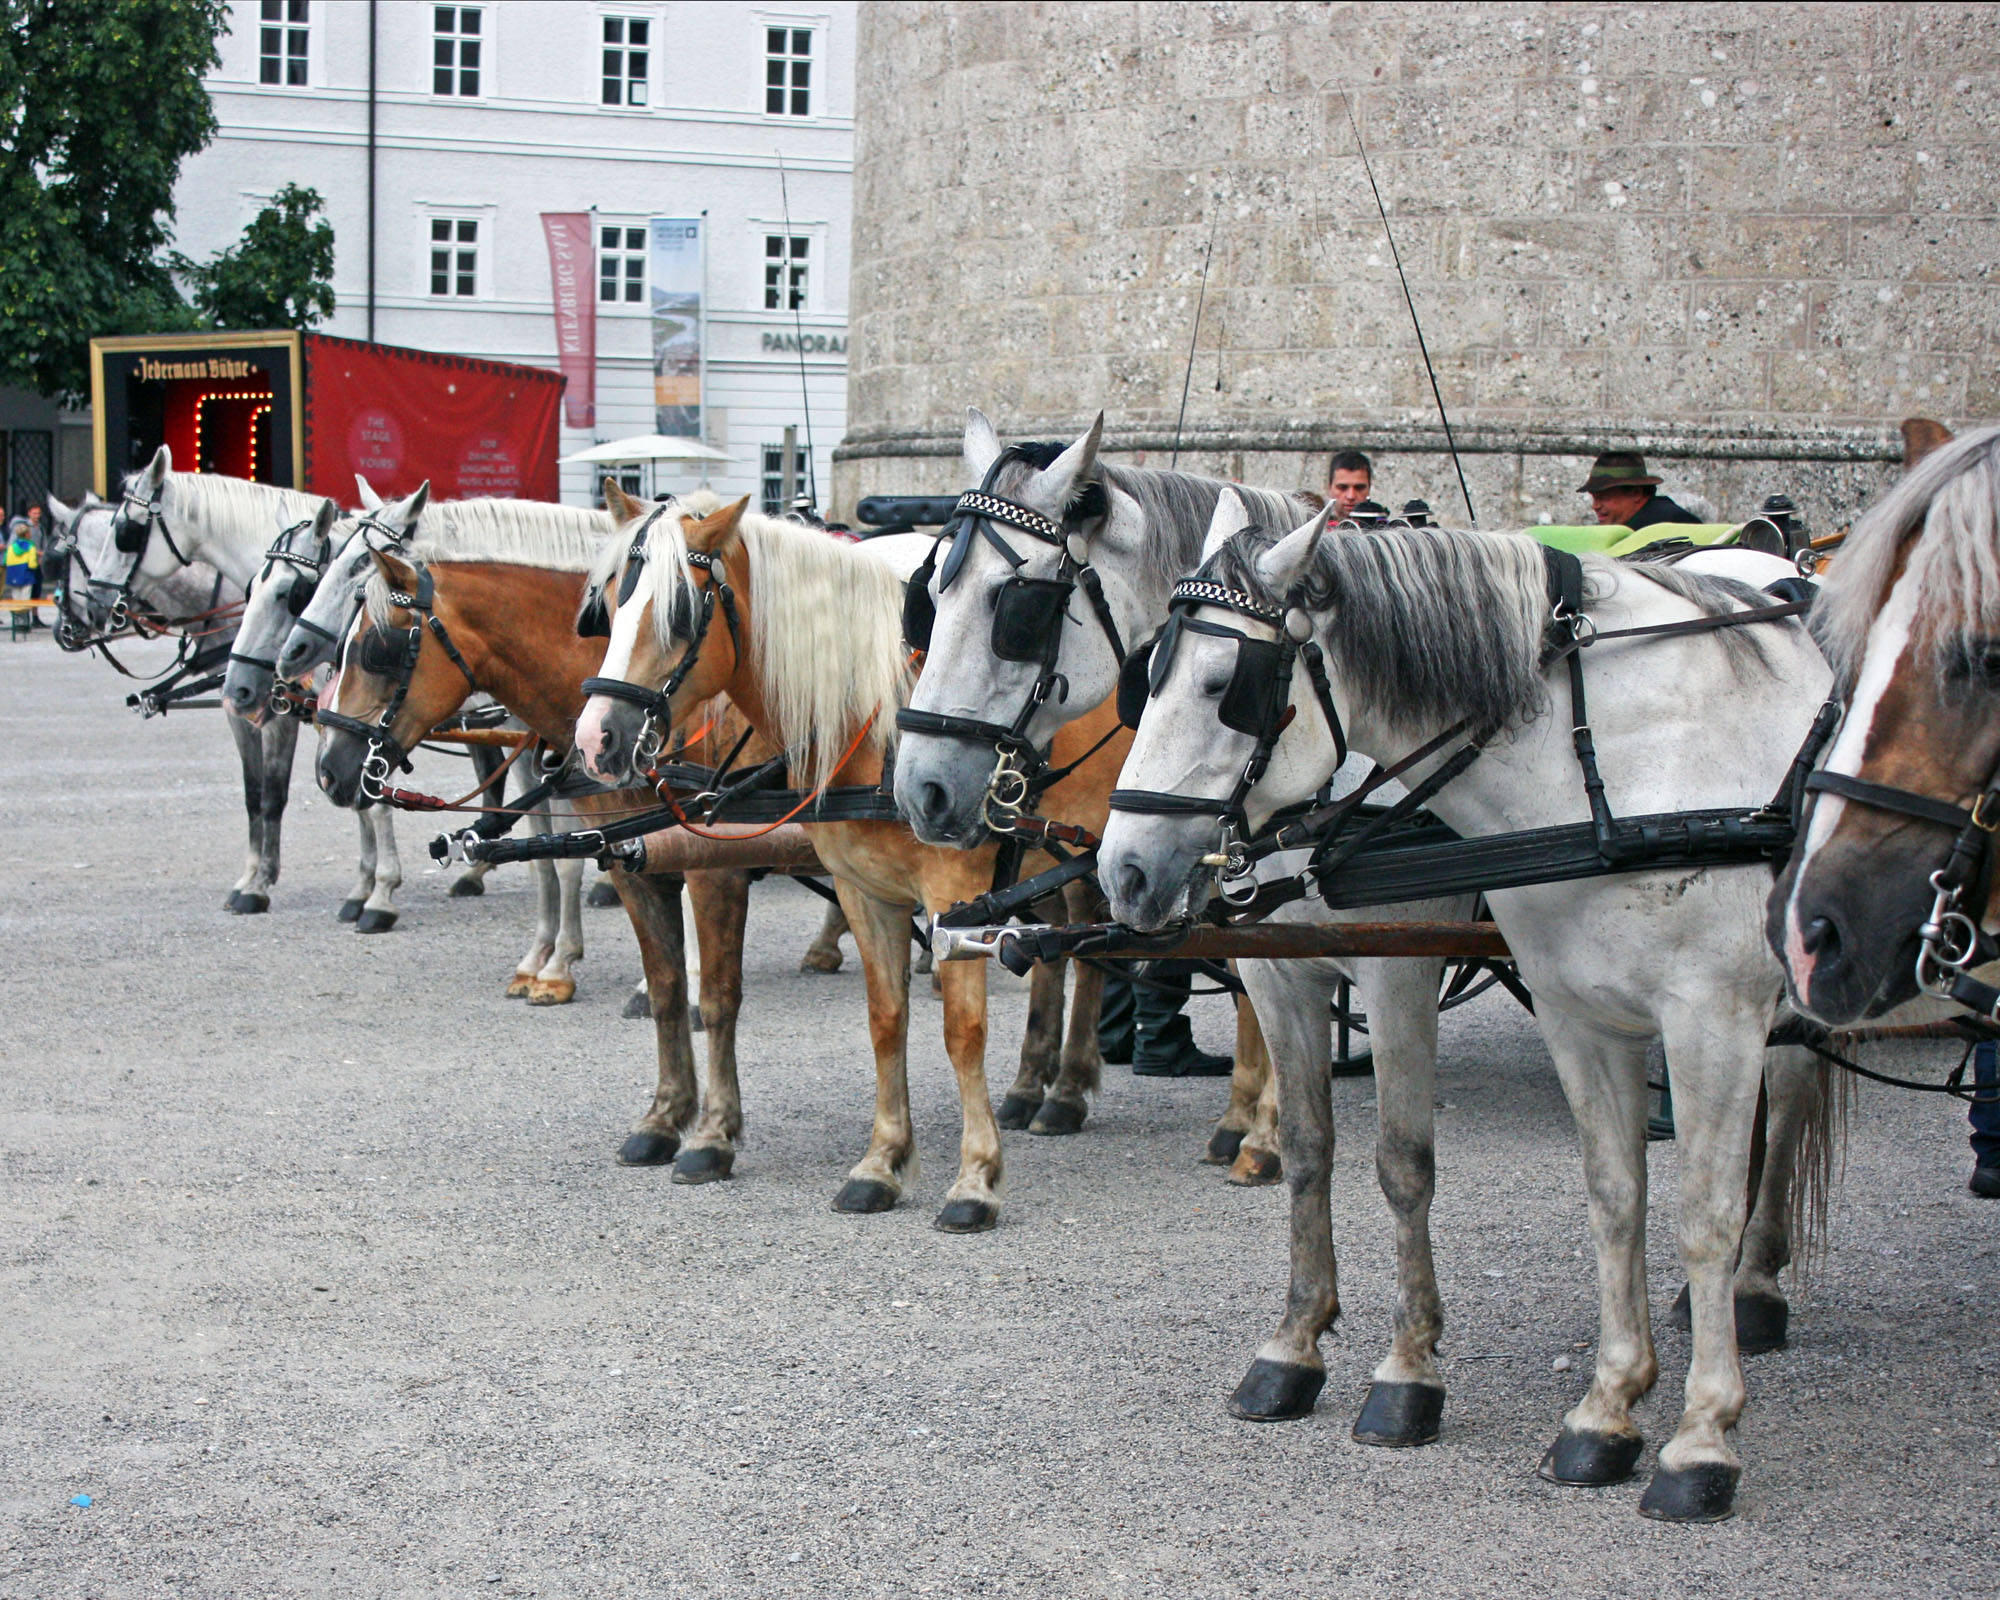 Horses waiting patiently in Residence Square.